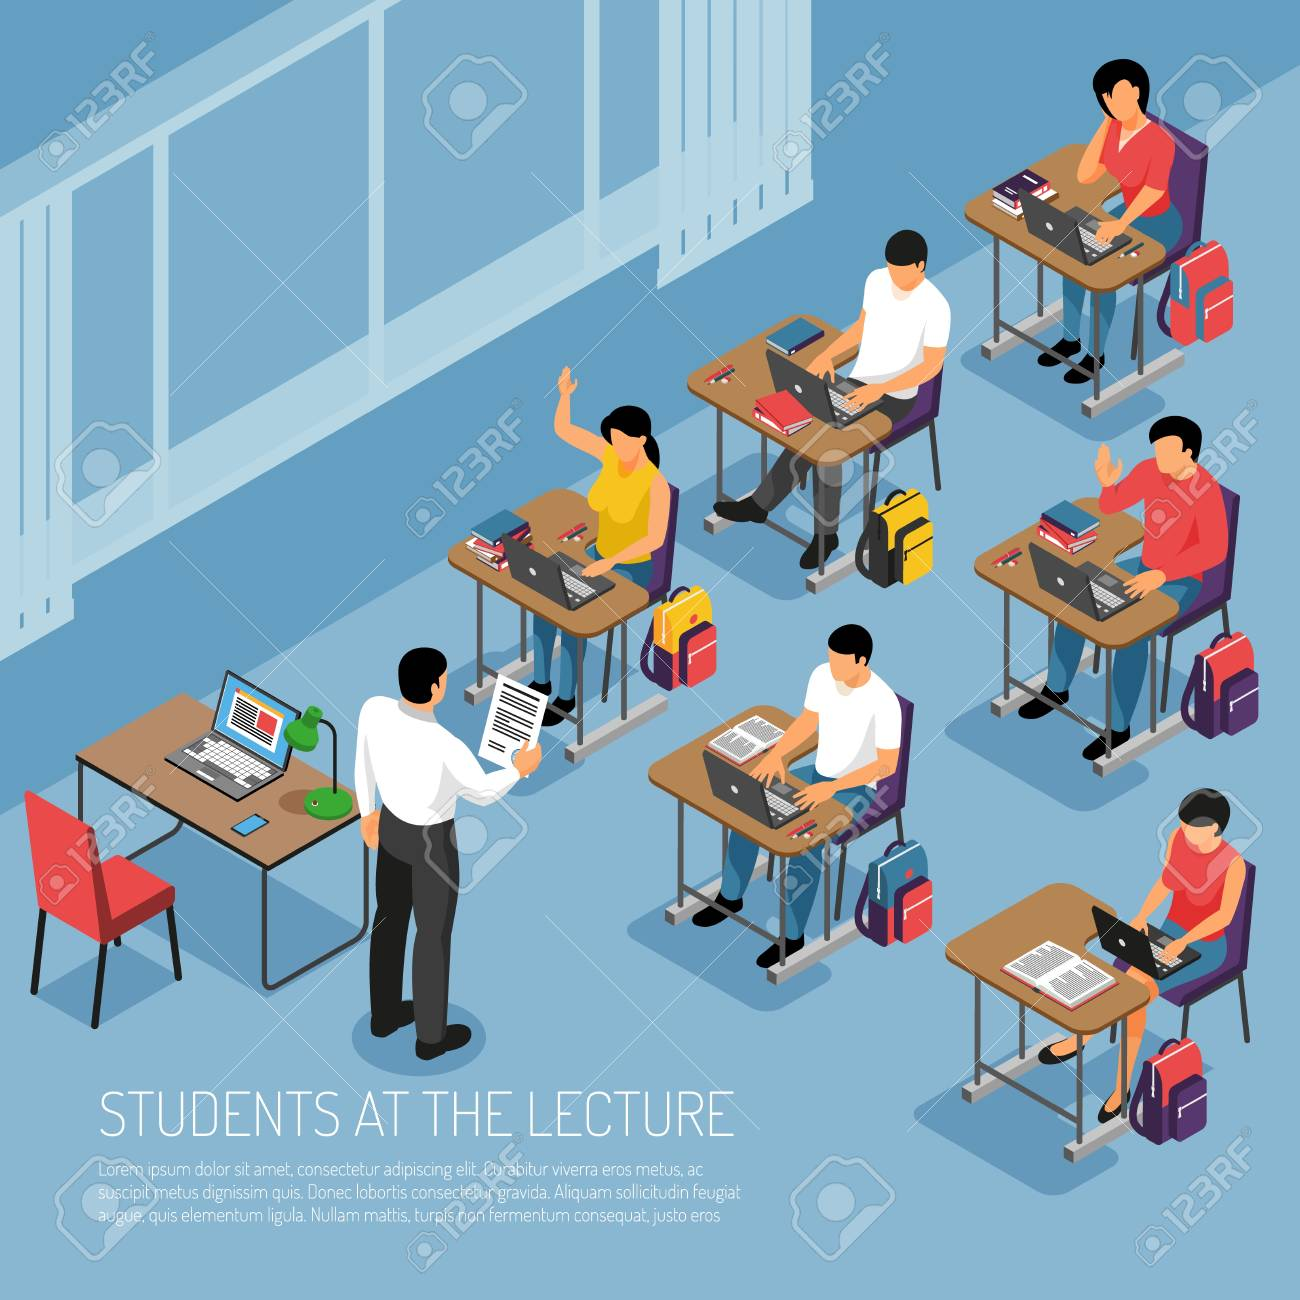 Higher education students taking notes at tutorial lecture participating in seminar seminar classes isometric composition vector illustration - 109270272